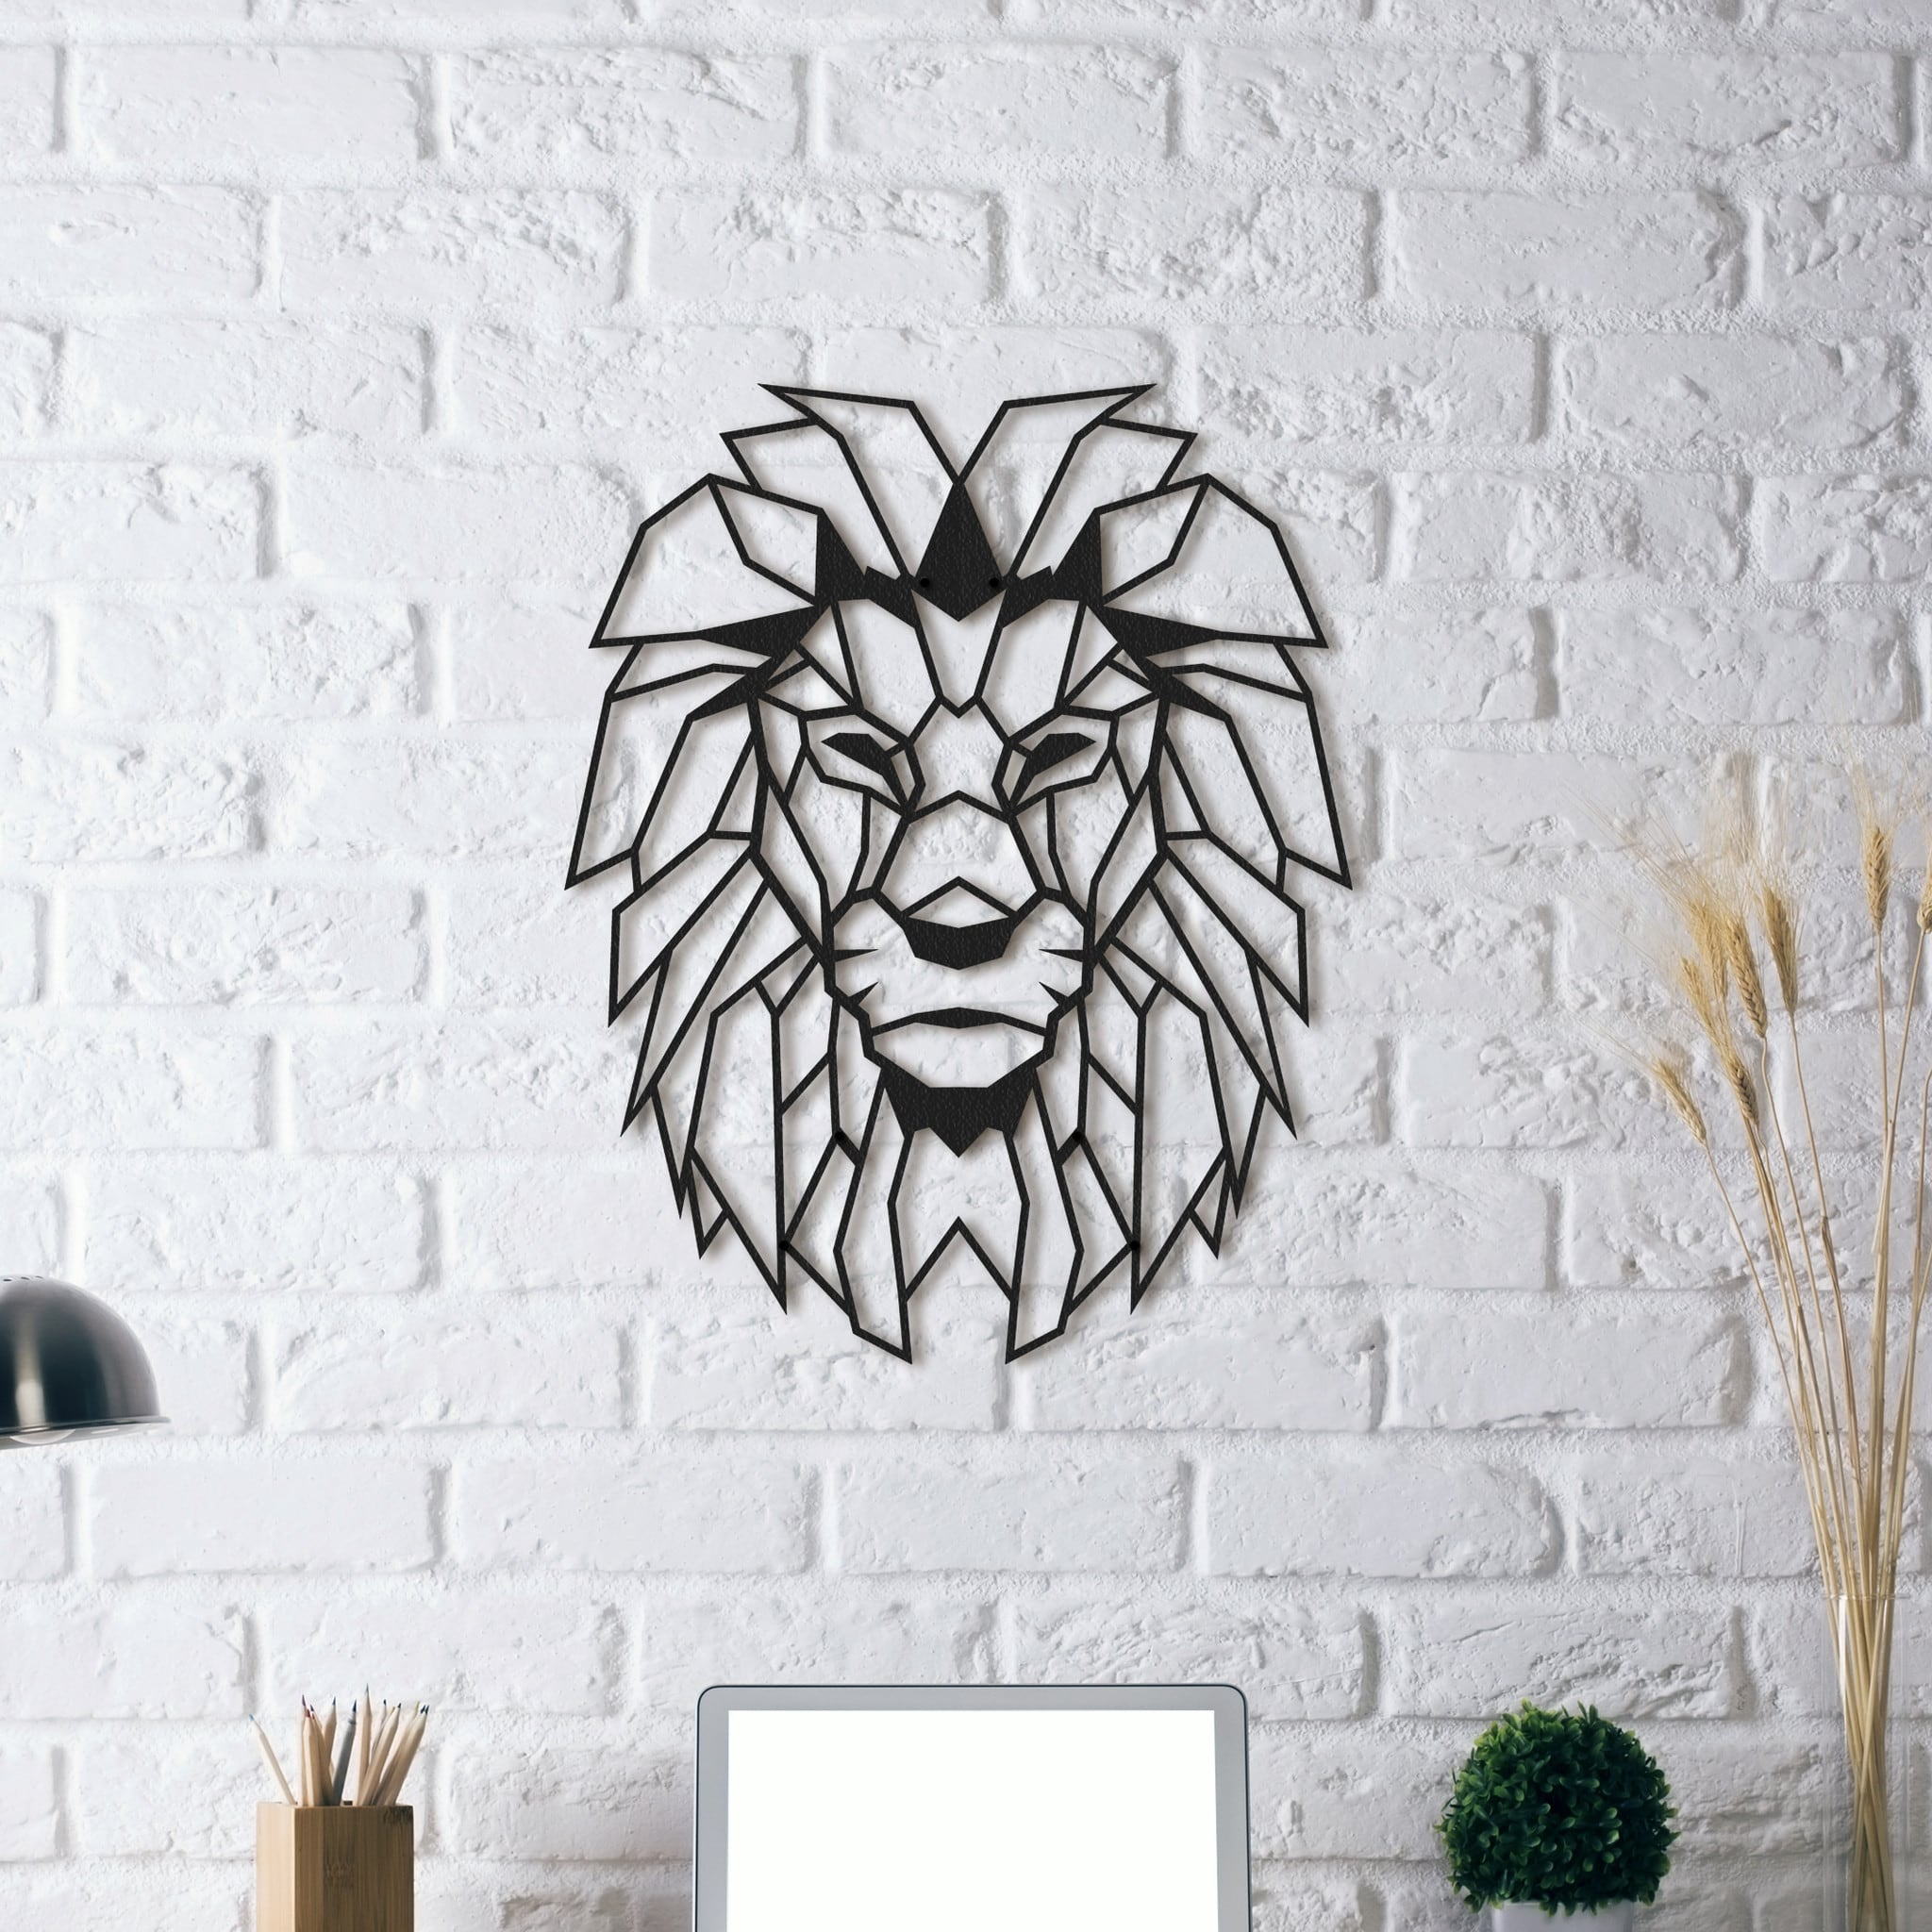 D coration design m tal lion artwall and co - Decoration murale en metal design ...